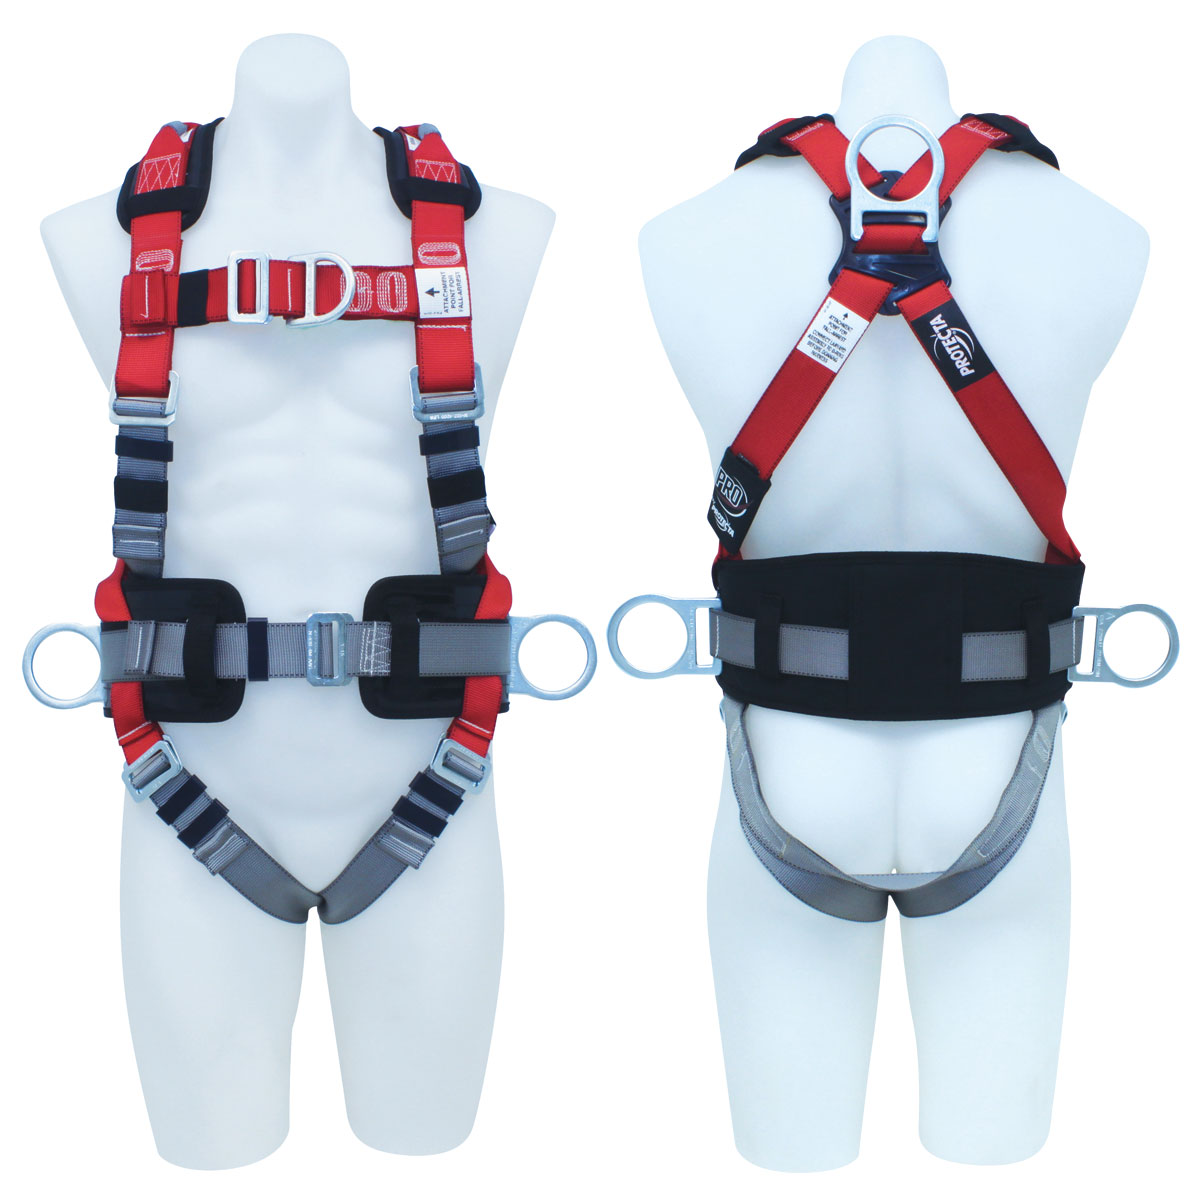 Harness - All Purpose 3M Protecta P100 AB124L c/w Rear/Front/Side D Rings & Retrieval Points/Waist Belt & Padded Back Pad - L